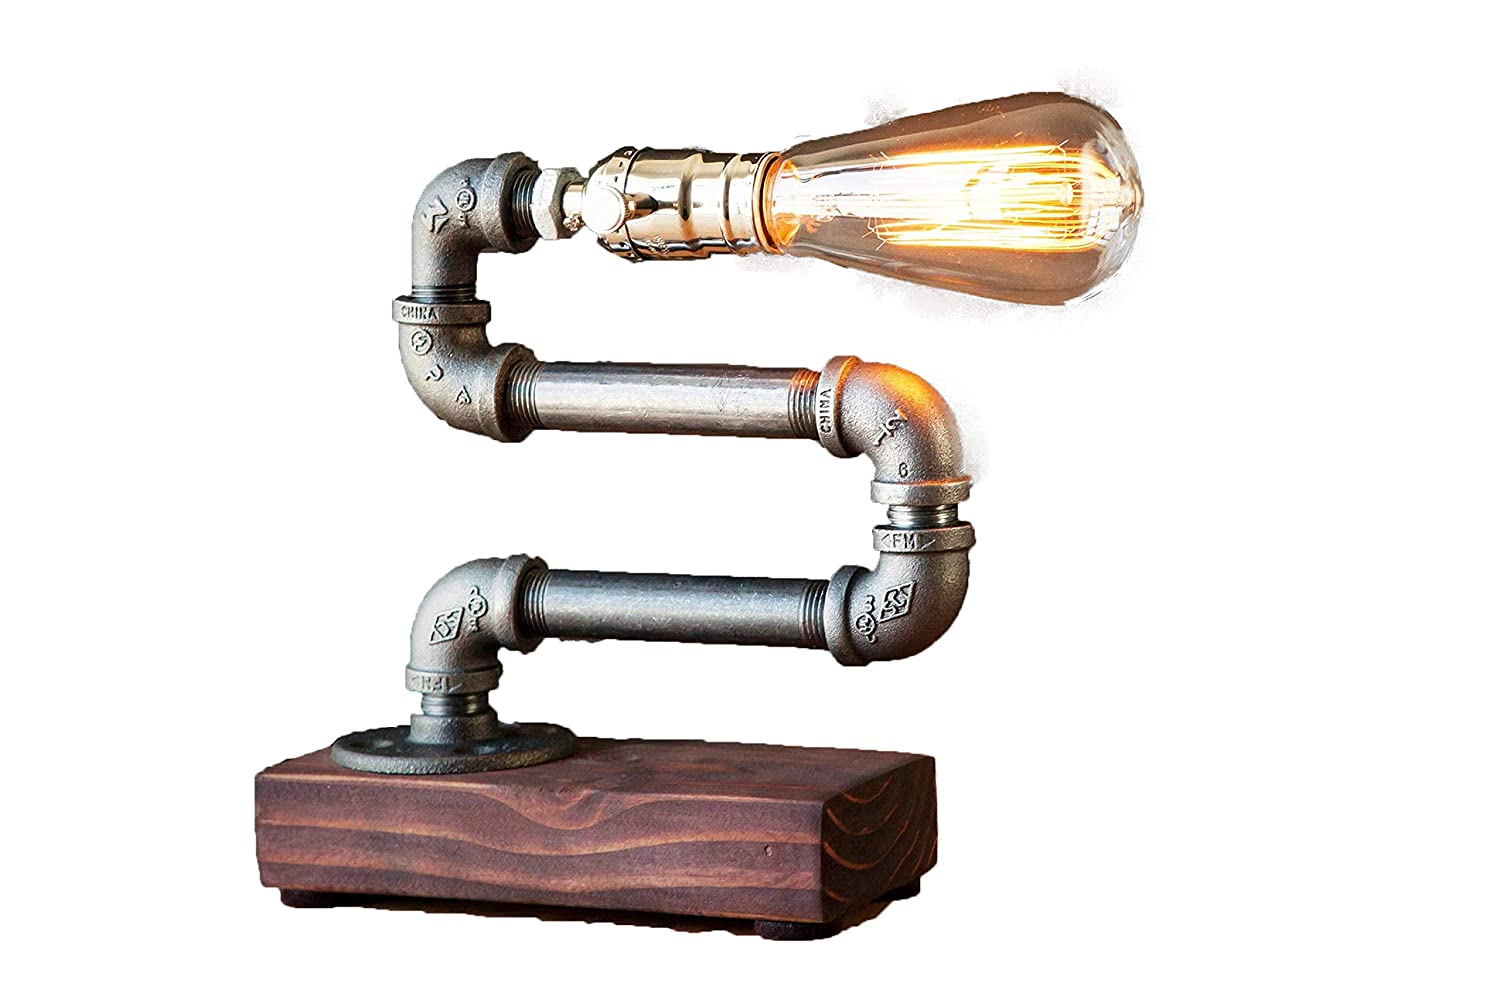 Buy The Micrometal Vintage Table Lamp Desk Lamp Edison Steampunk Lamp Rustic Home Decor Gift For Men Farmhouse Decor Home Decor Desk Accessories Industrial Lighting 2299 Online At Low Prices In India Amazon In